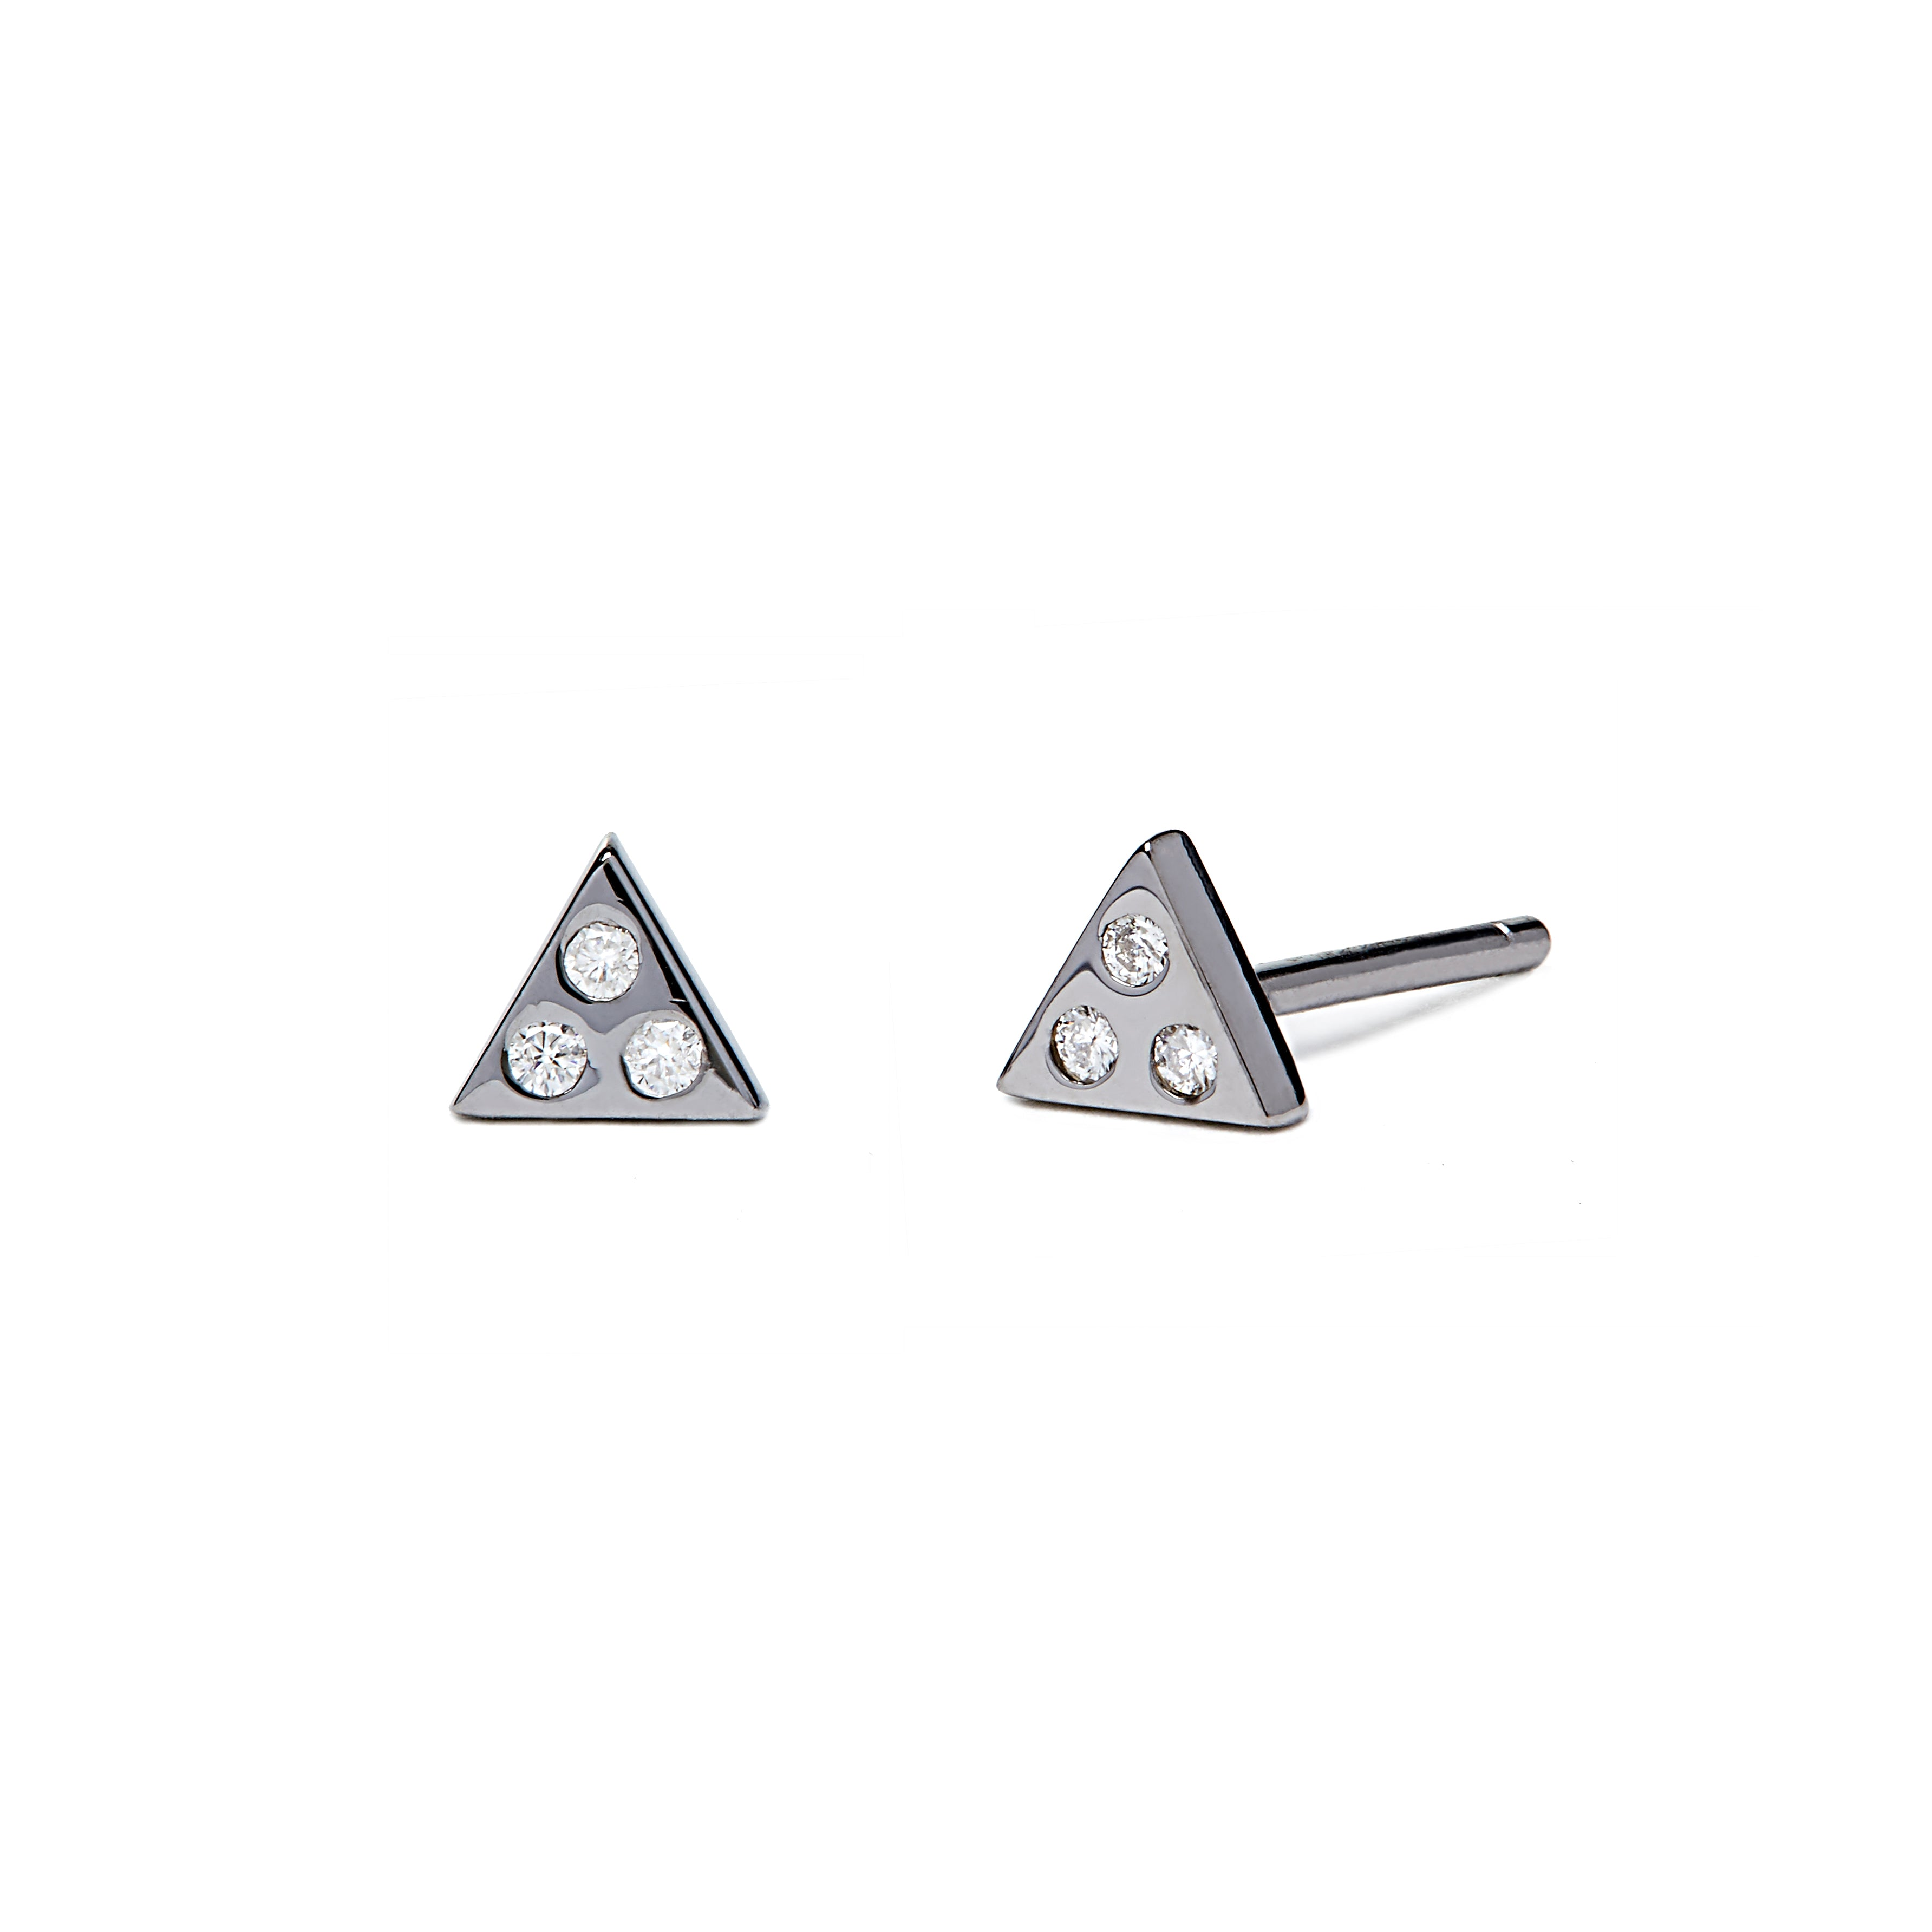 Izzy - Earring - Black Rhodium - Diamond - Stud - Single - Louise Varberg Jewellery